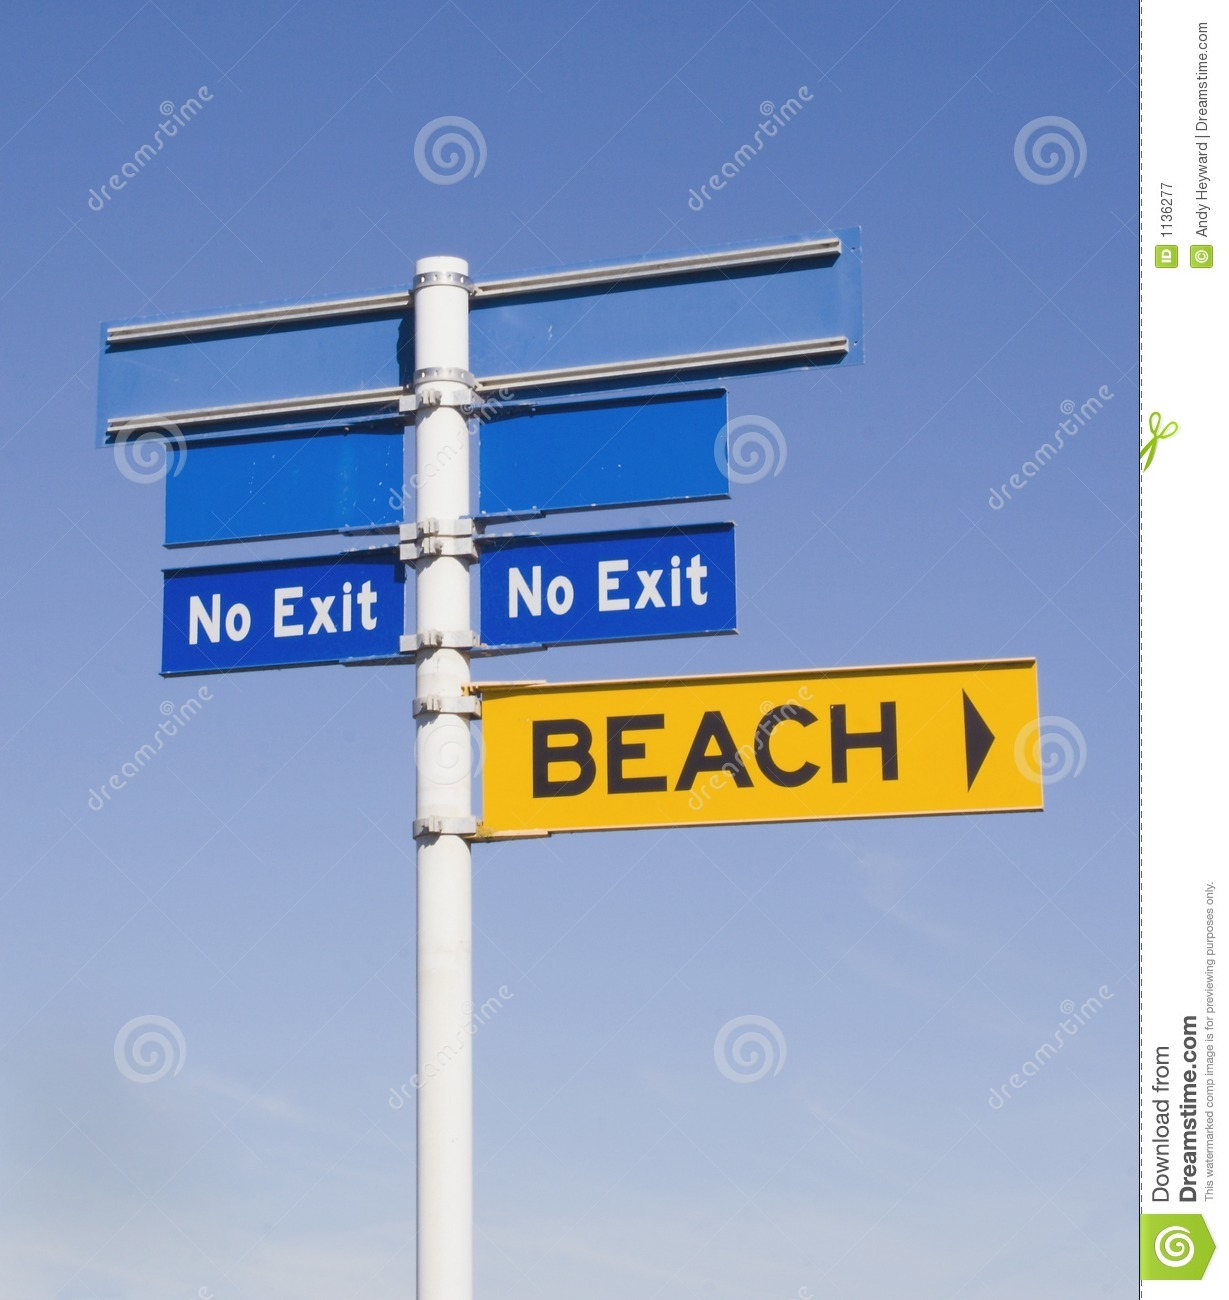 No exit from the beach